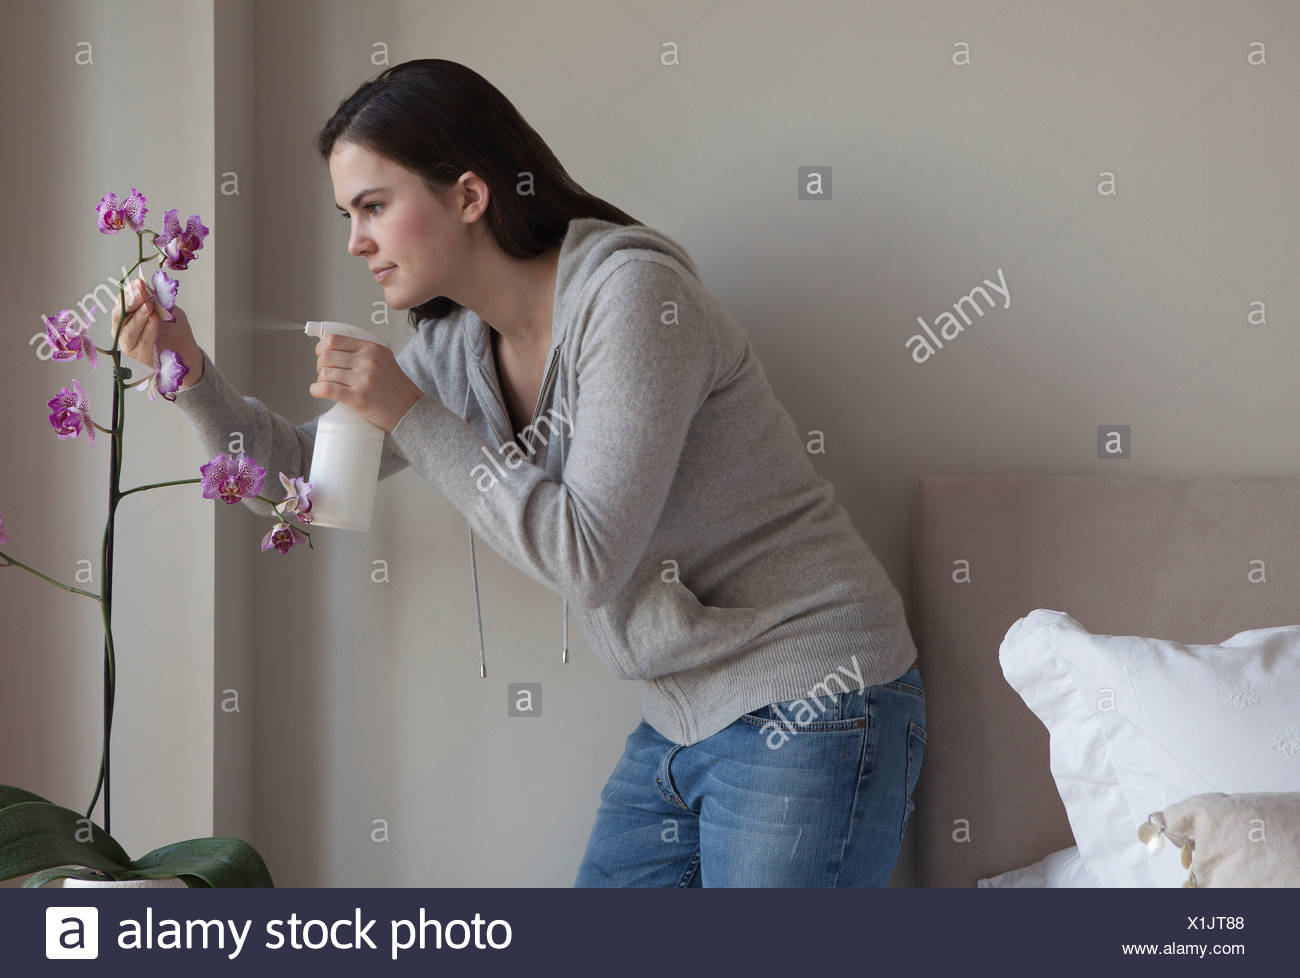 Woman spraying indoor plant - Stock Image